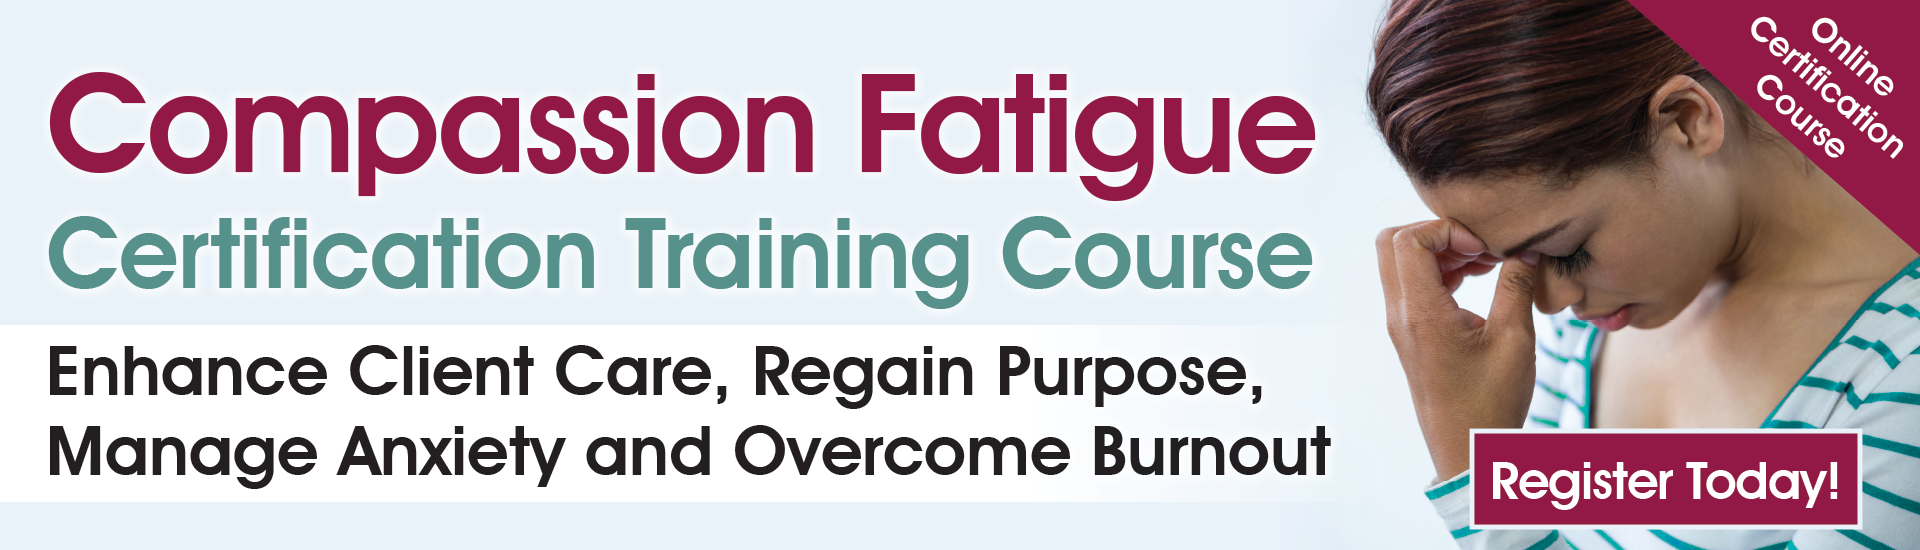 Compassion Fatigue Certification Online Training